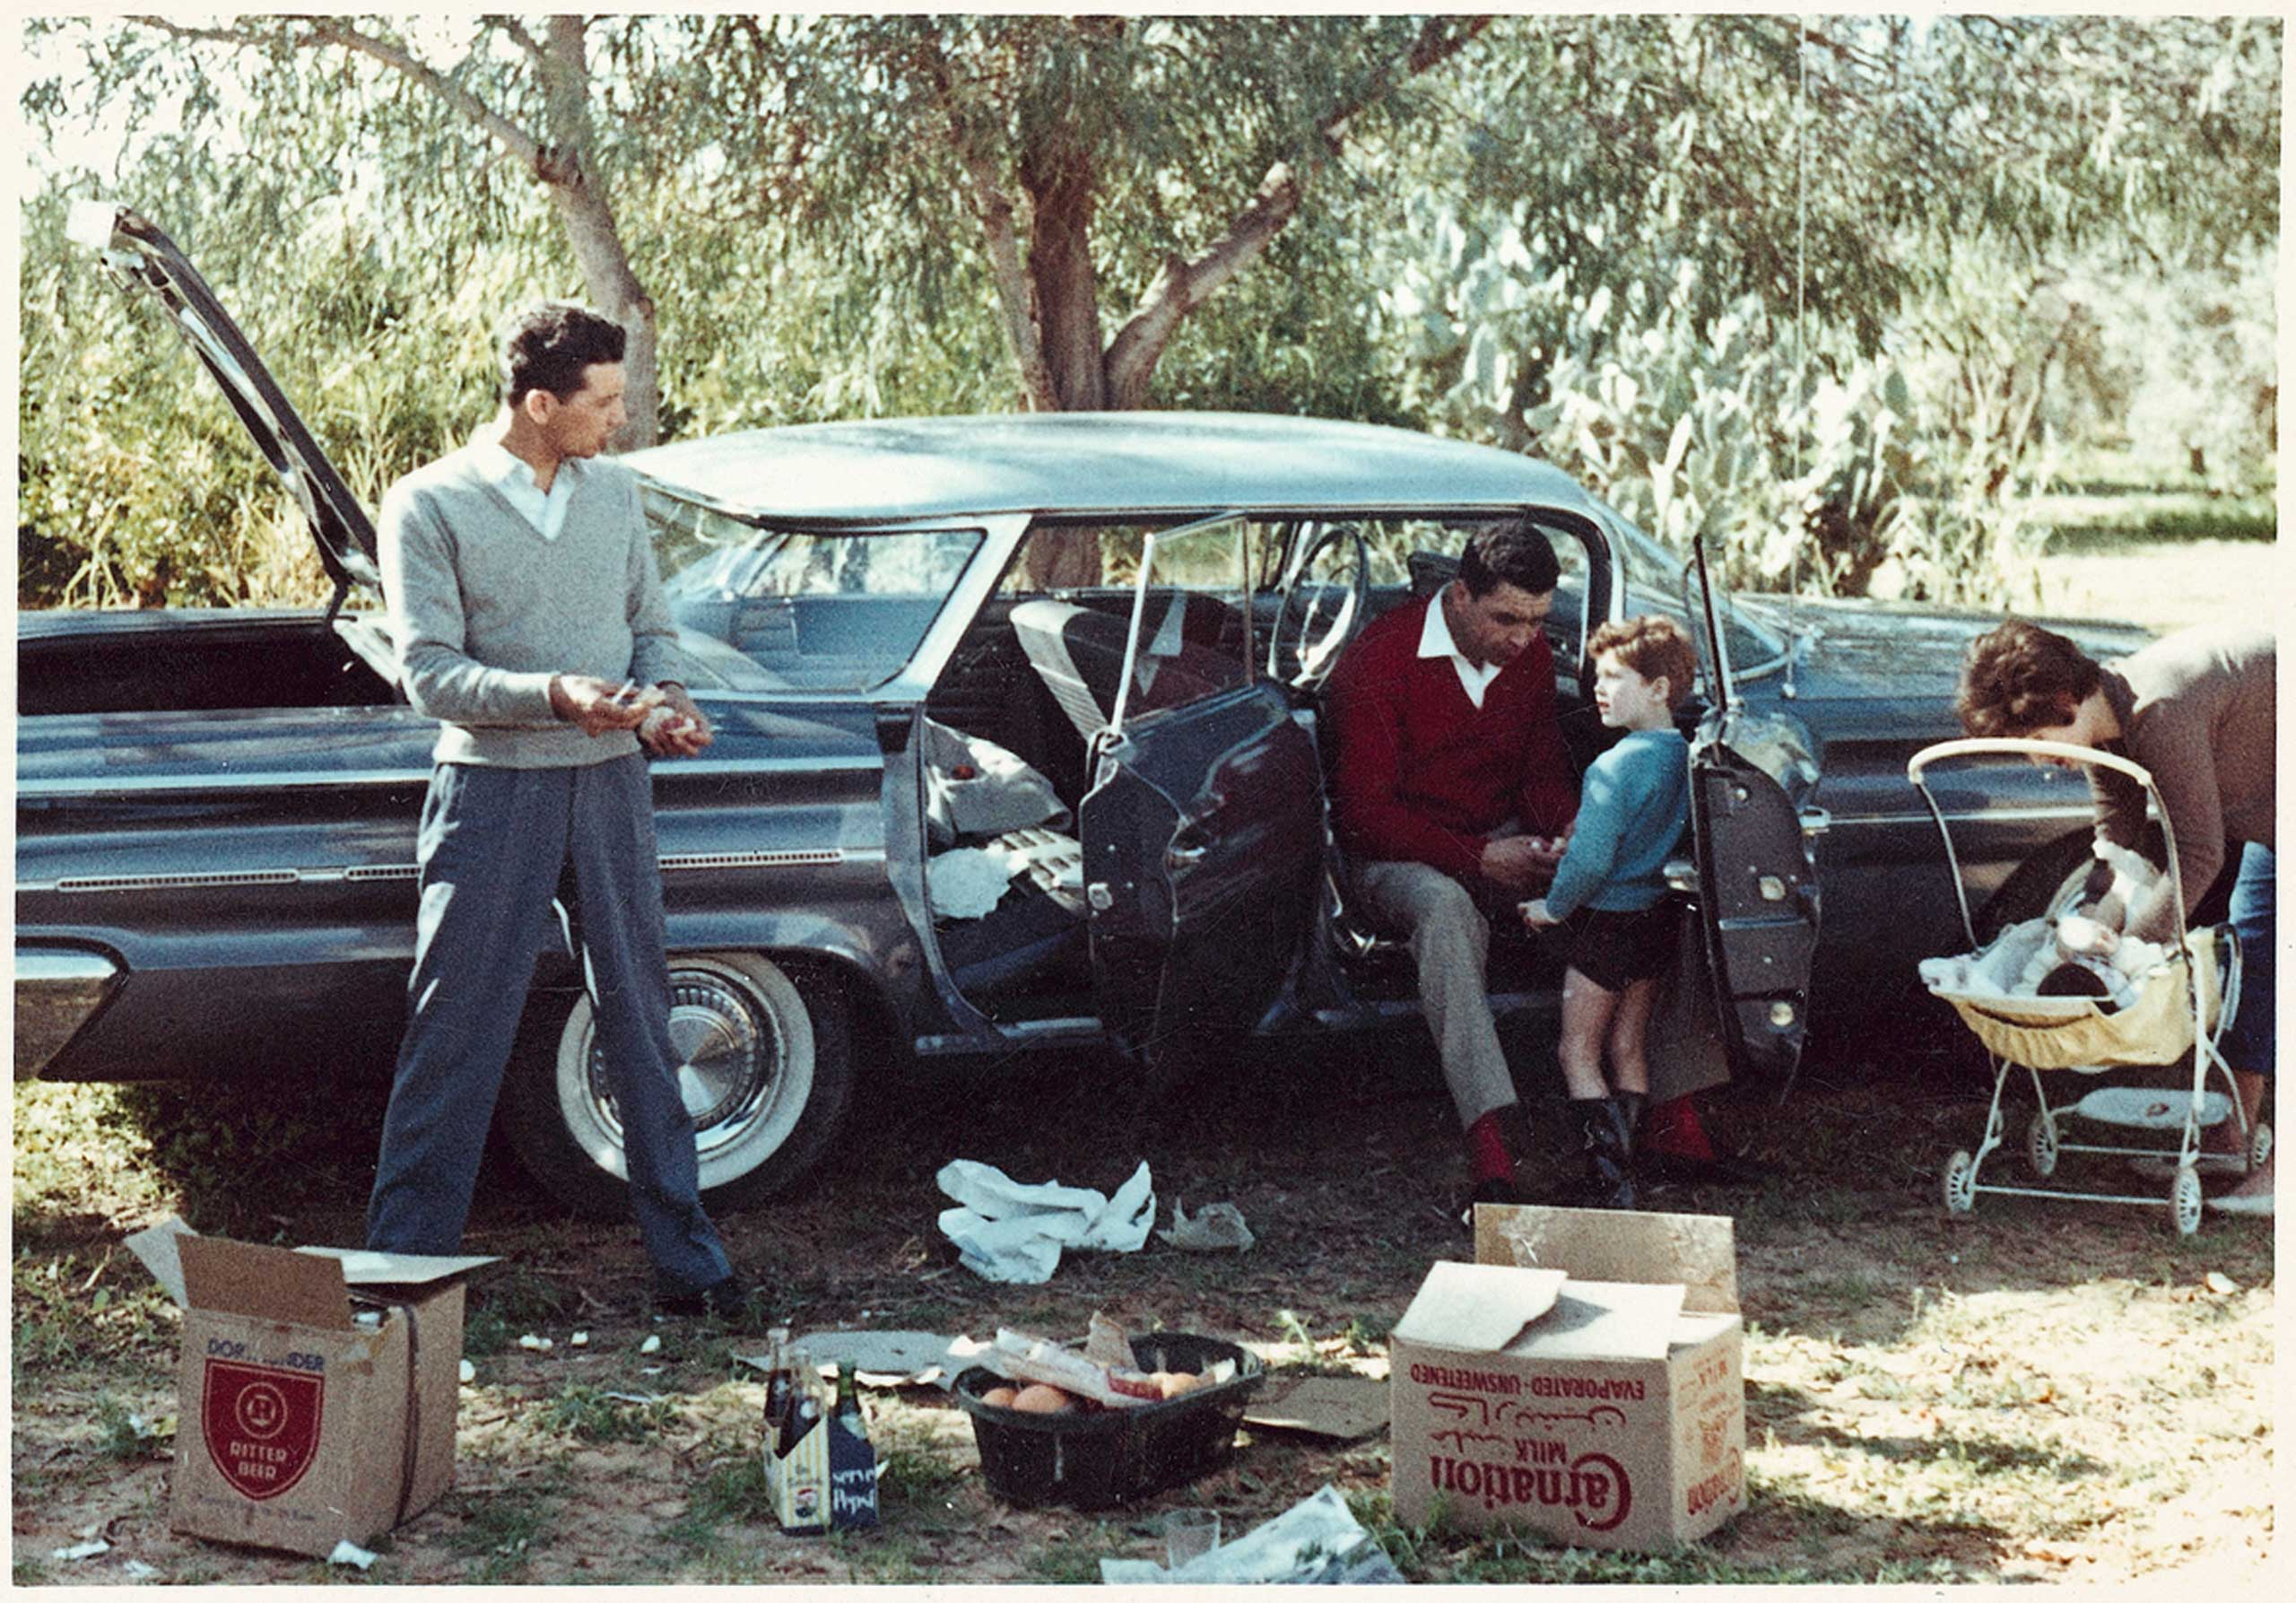 A picnic in Mohamed Nga's car, which he had purchased on a U.S. military base in Tripoli